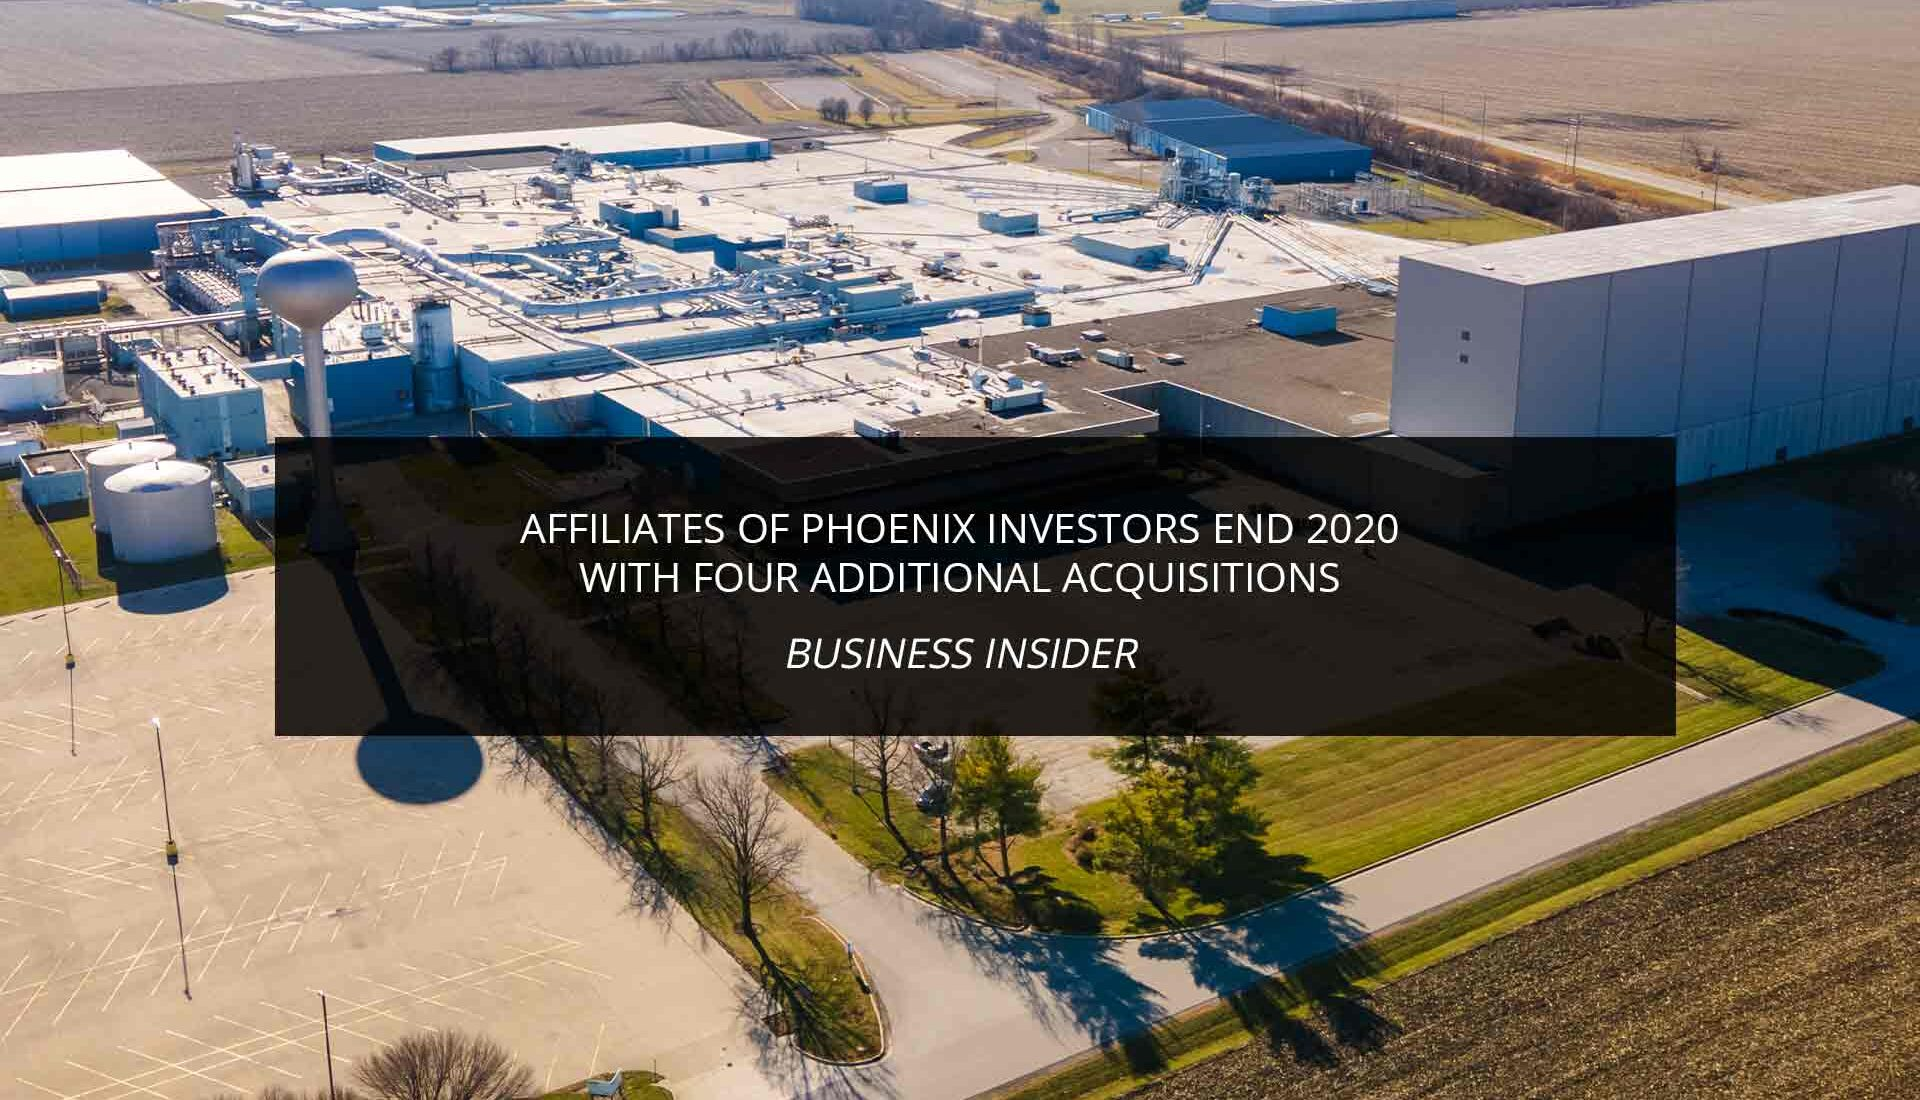 Affiliates Of Phoenix Investors End 2020 With Four Additional Acquisitions